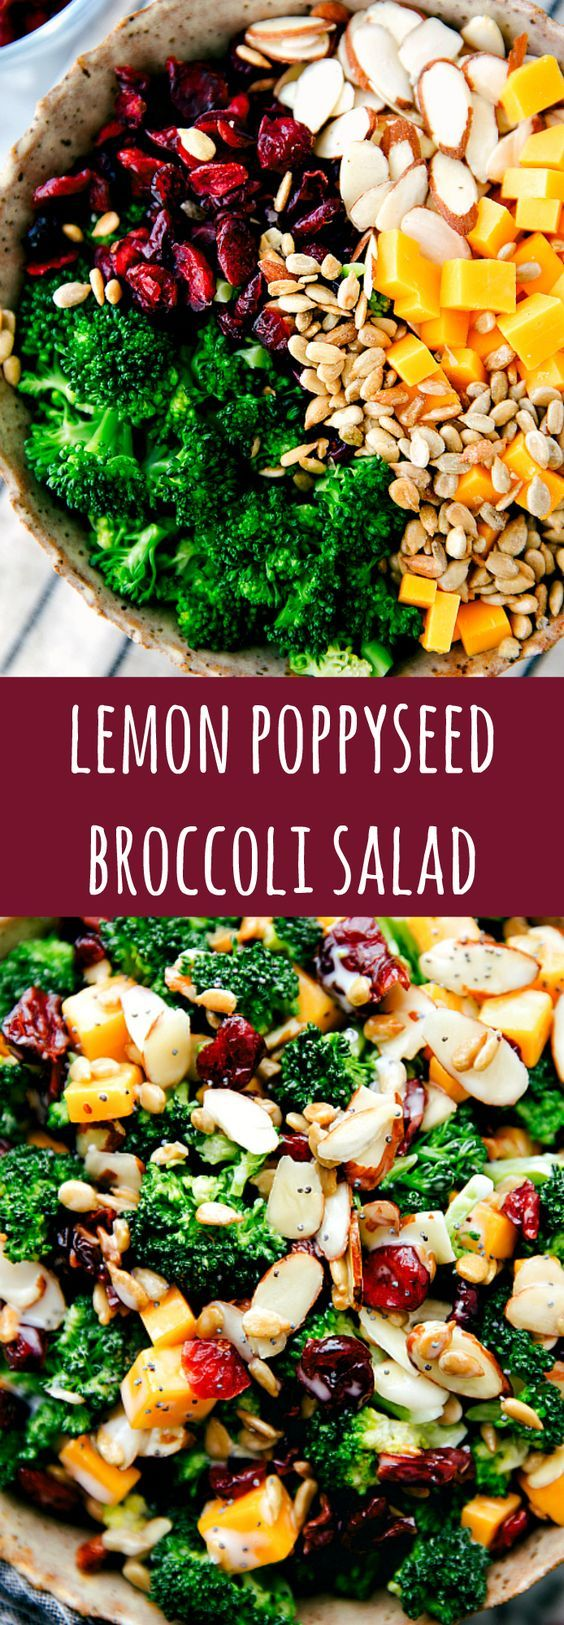 A delicious, simple, and quick lemon poppyseed broccoli salad. Broccoli, dried cranberries, sunflower seeds, sharp cheddar cheese, and sliced almonds with a delicious creamy lemon poppyseed dressing.: